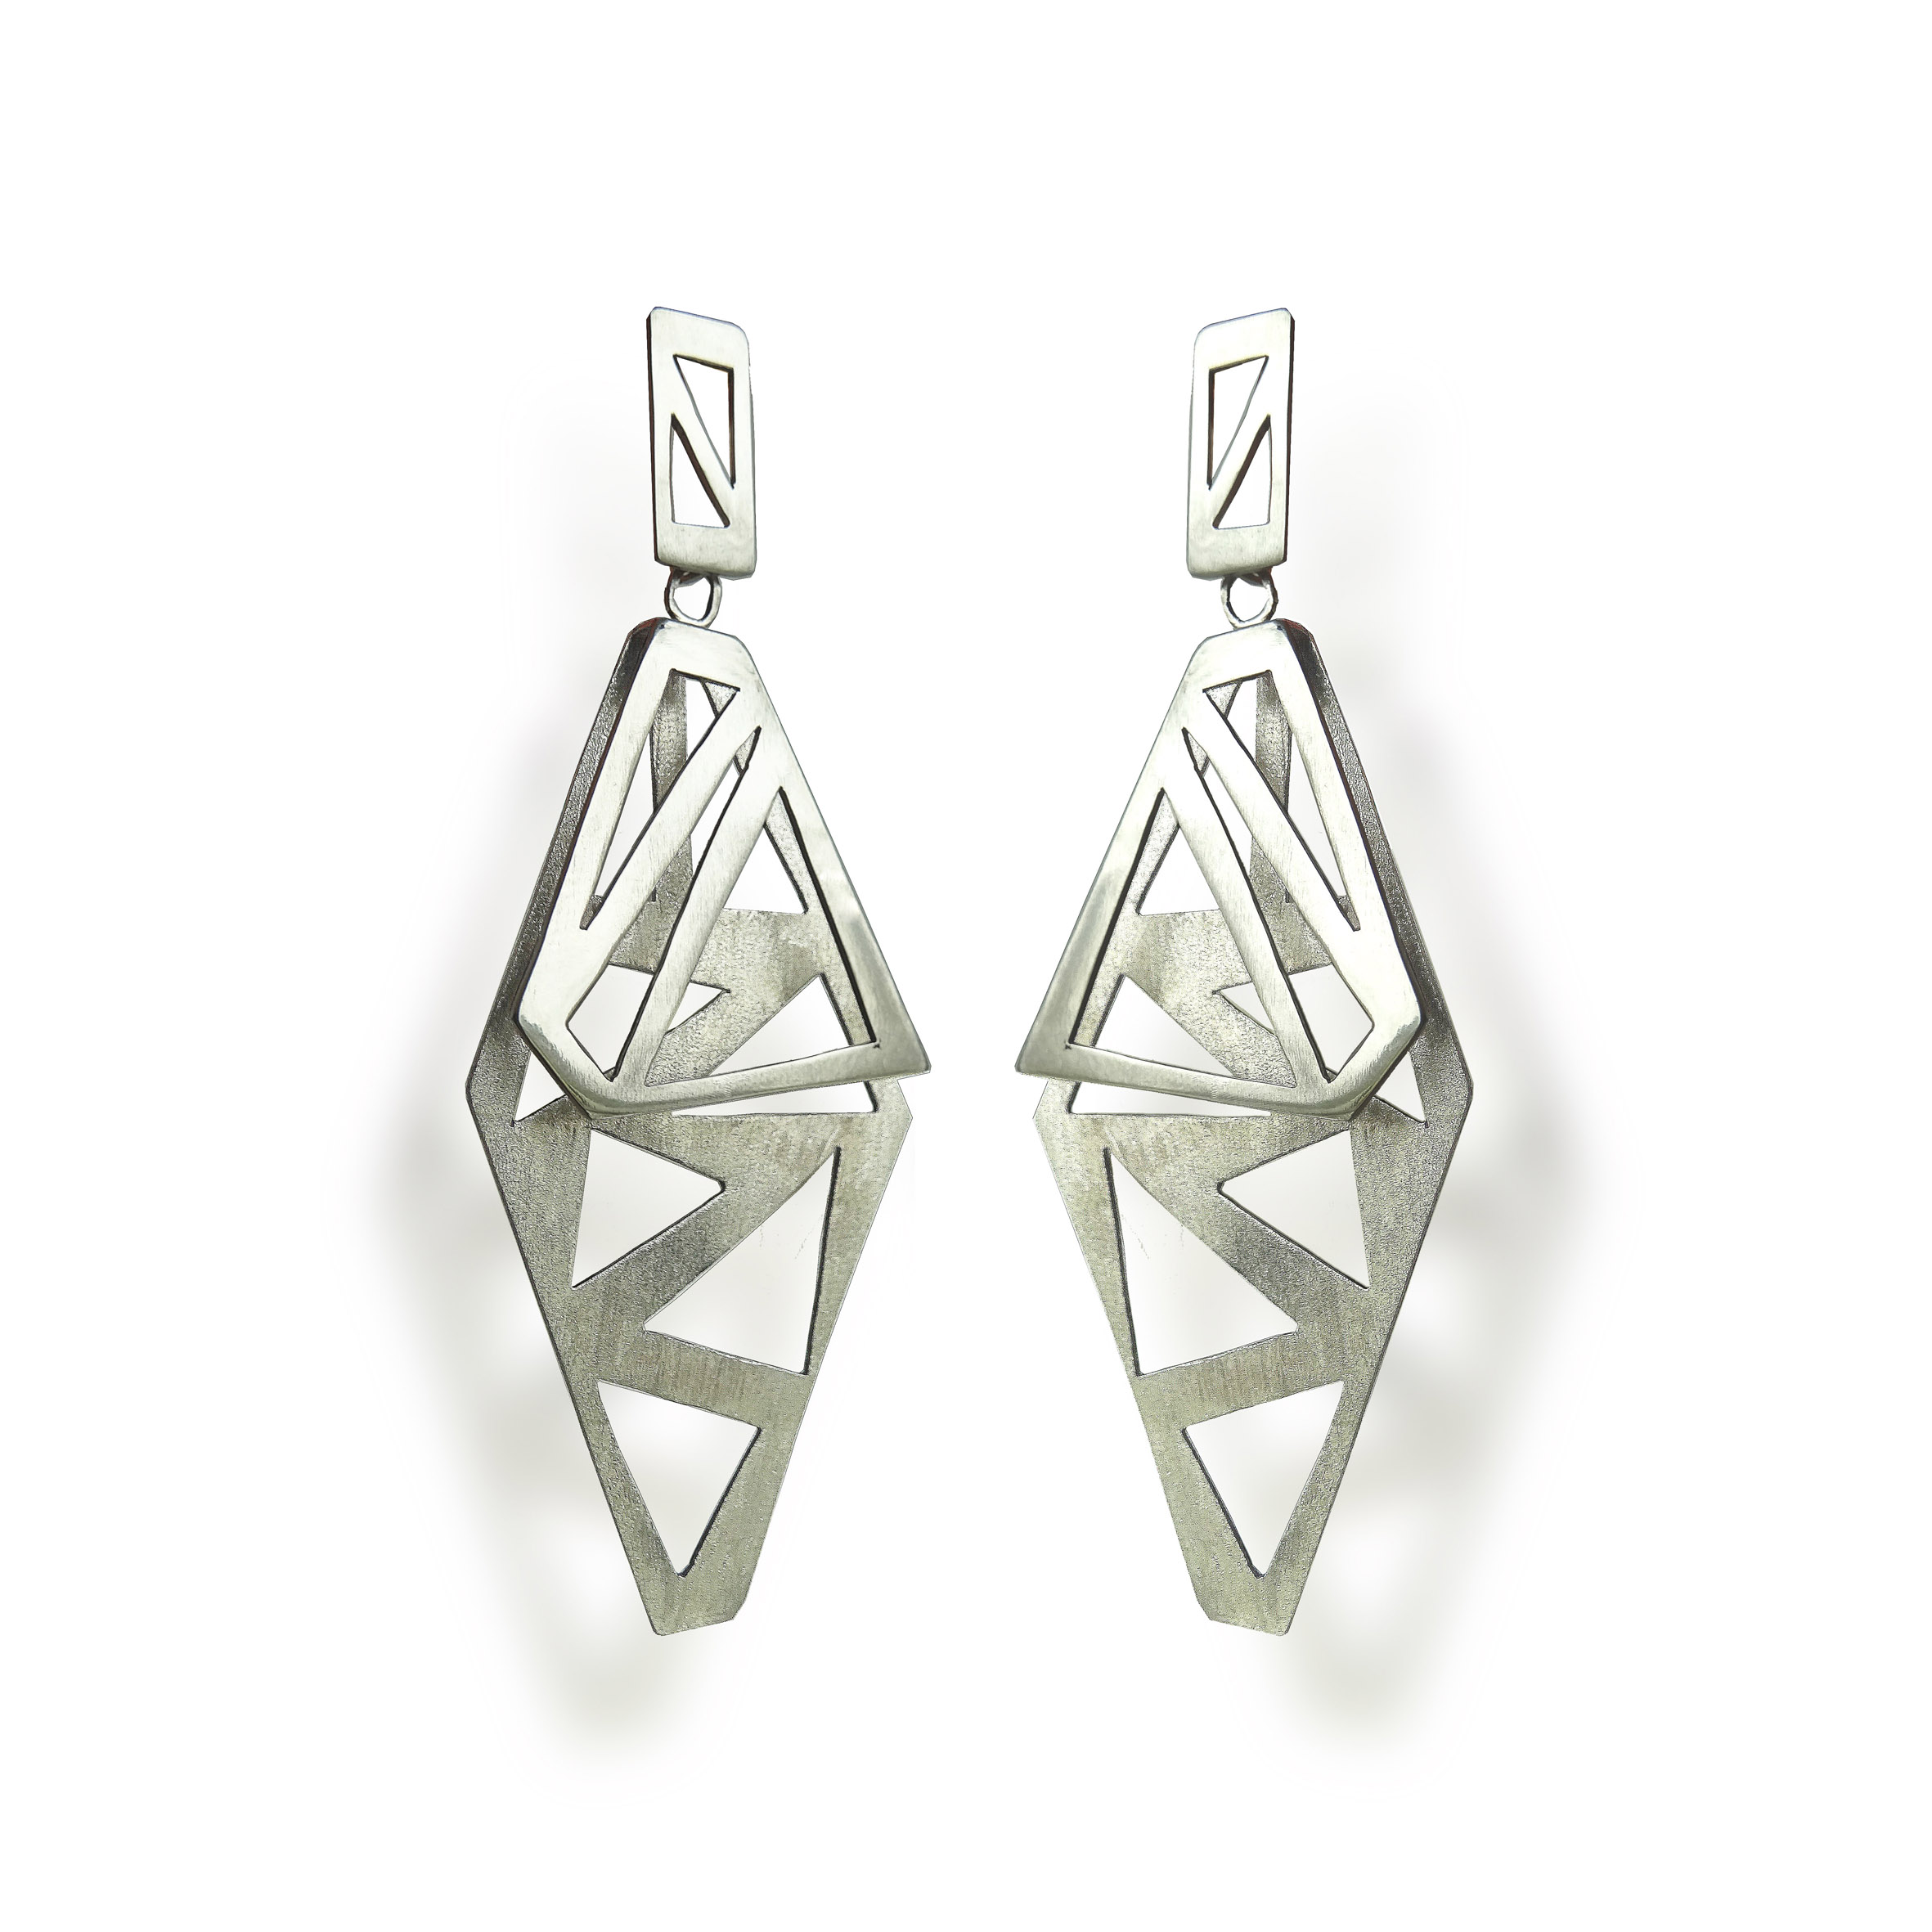 concrete architecture earrings fashion product view in black gray